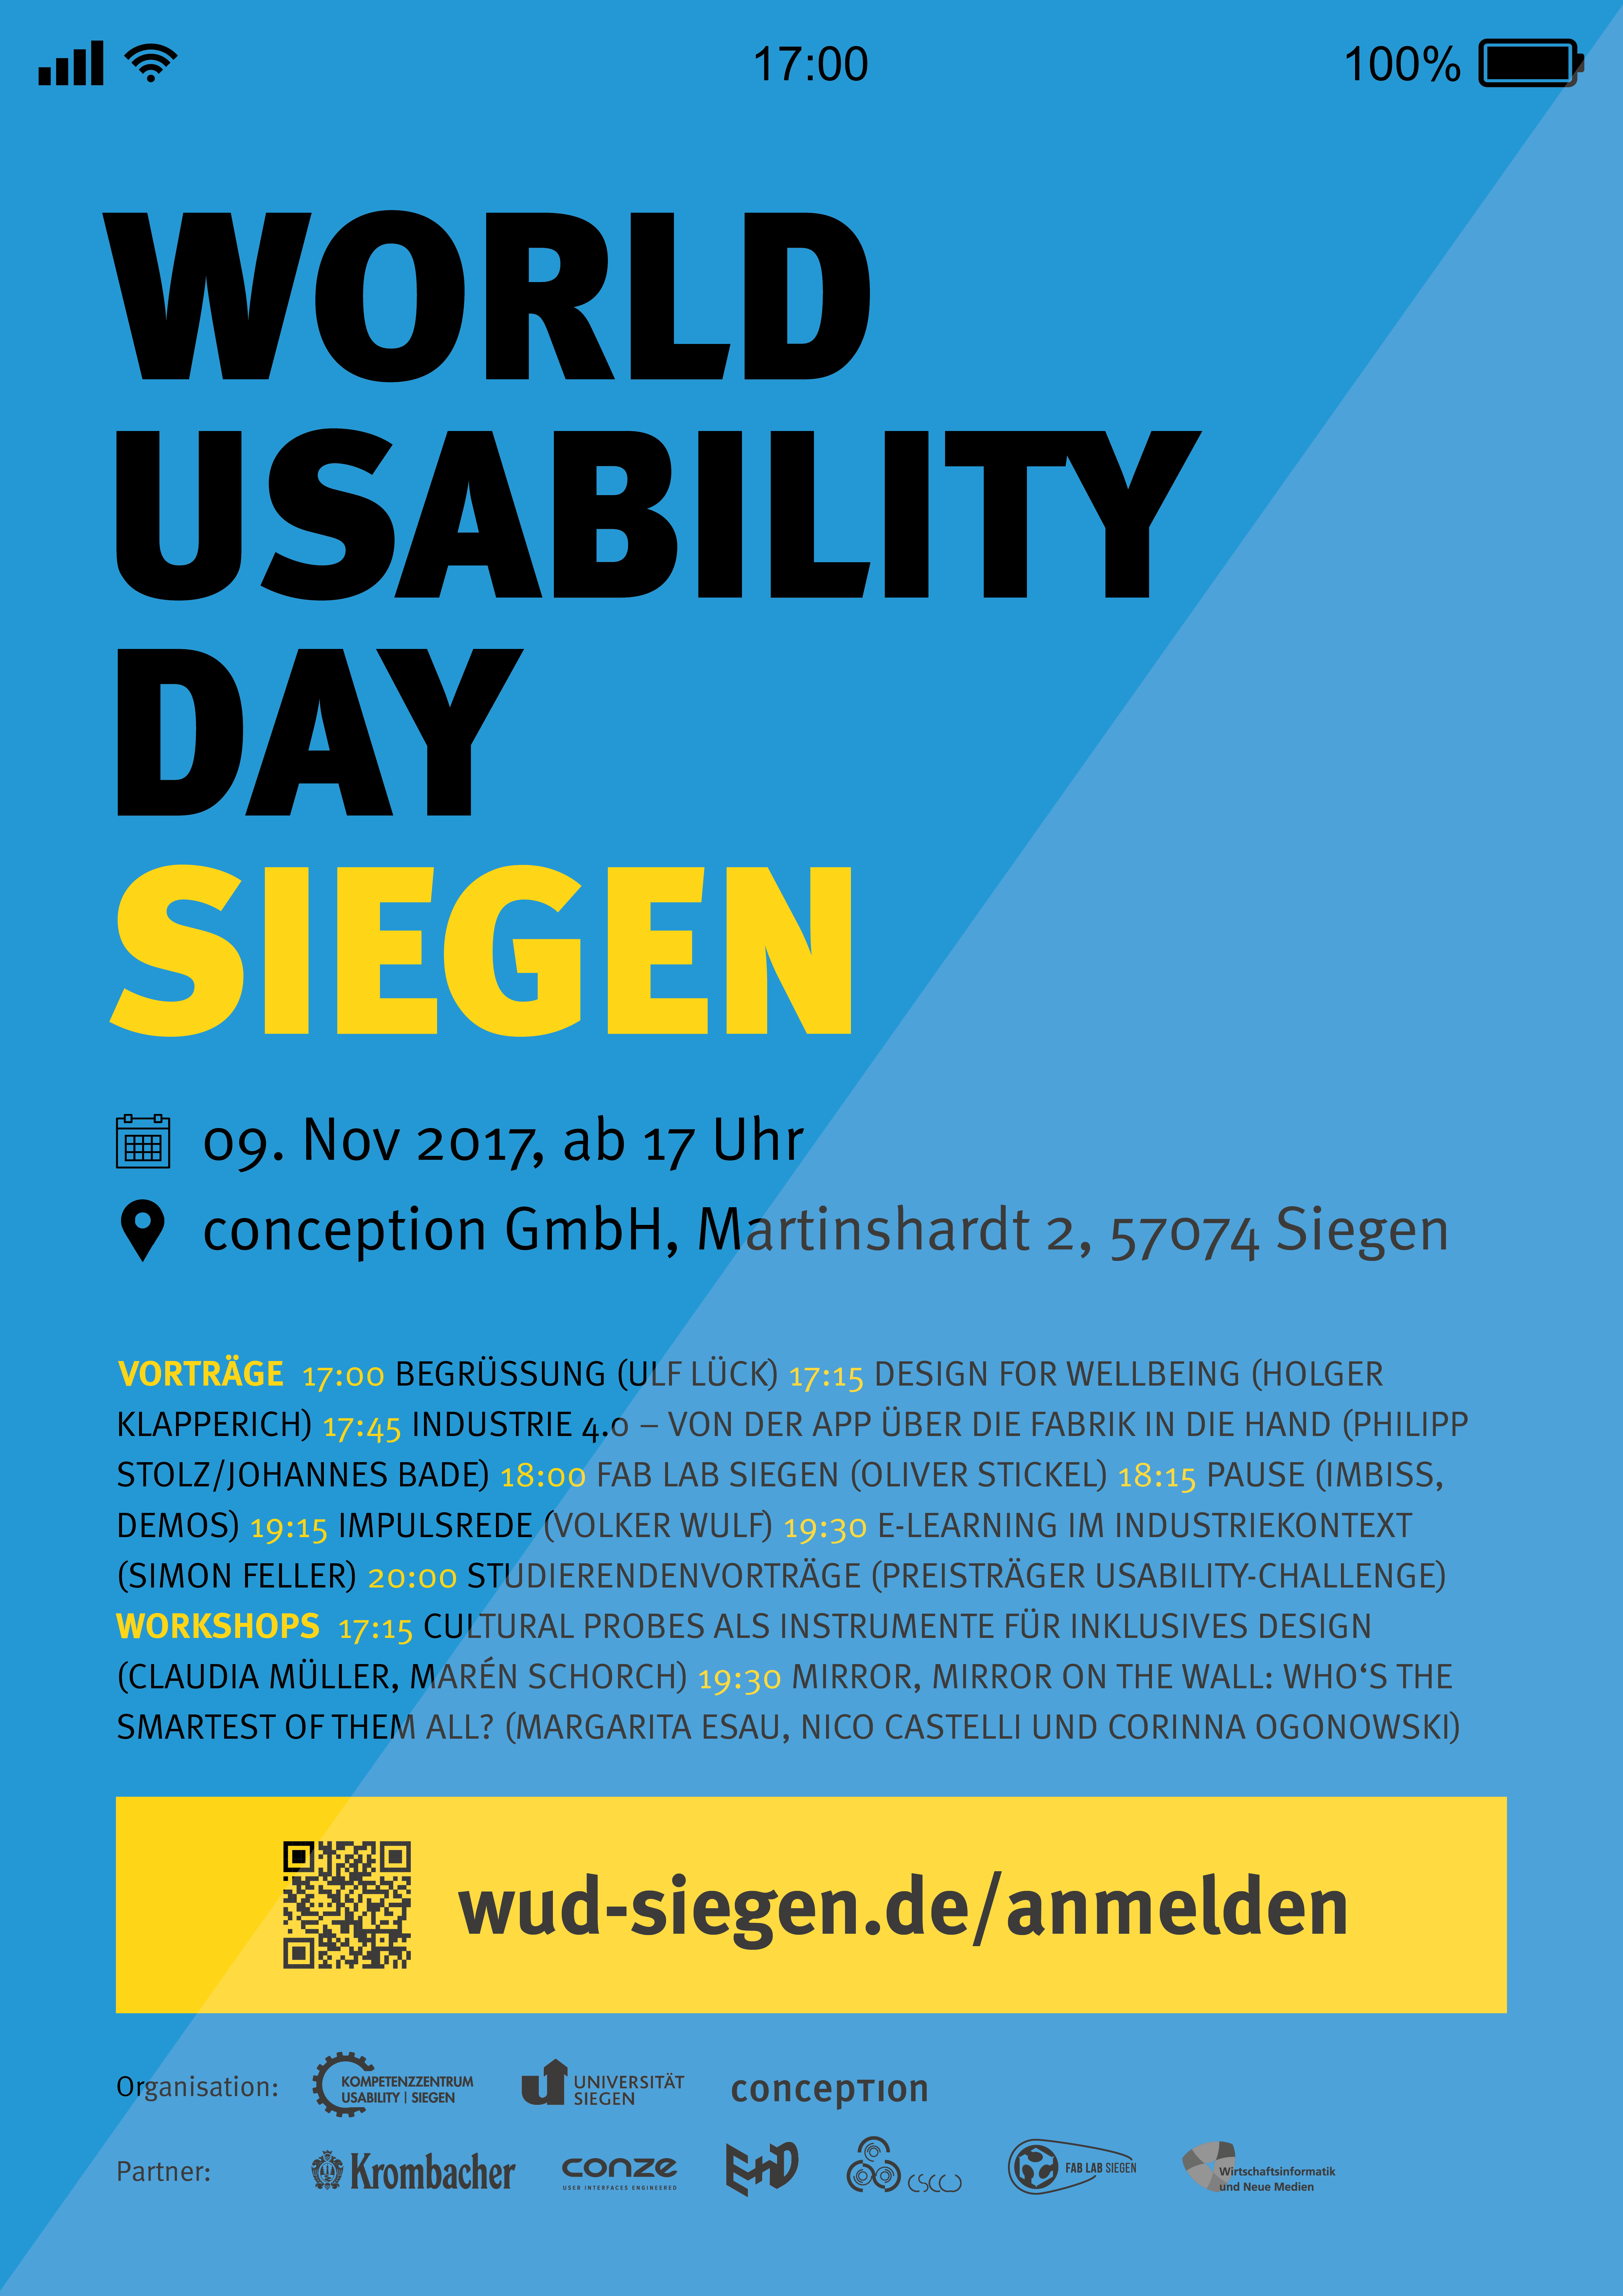 World-Usability-Day 2017 Siegen